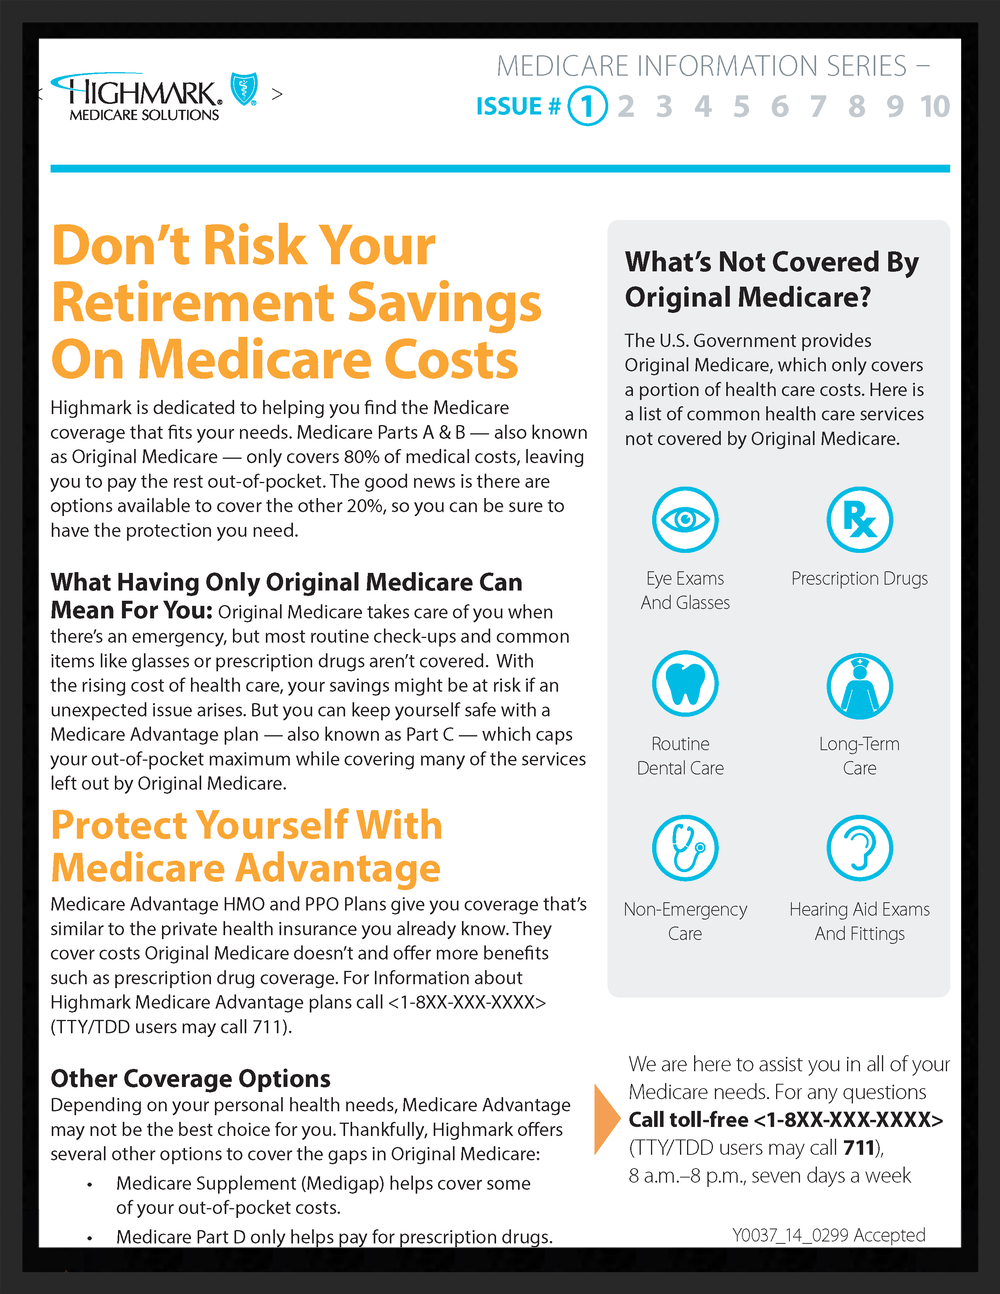 Email Marketing Info Guide Series for Highmark Blue Cross/Blue Shield